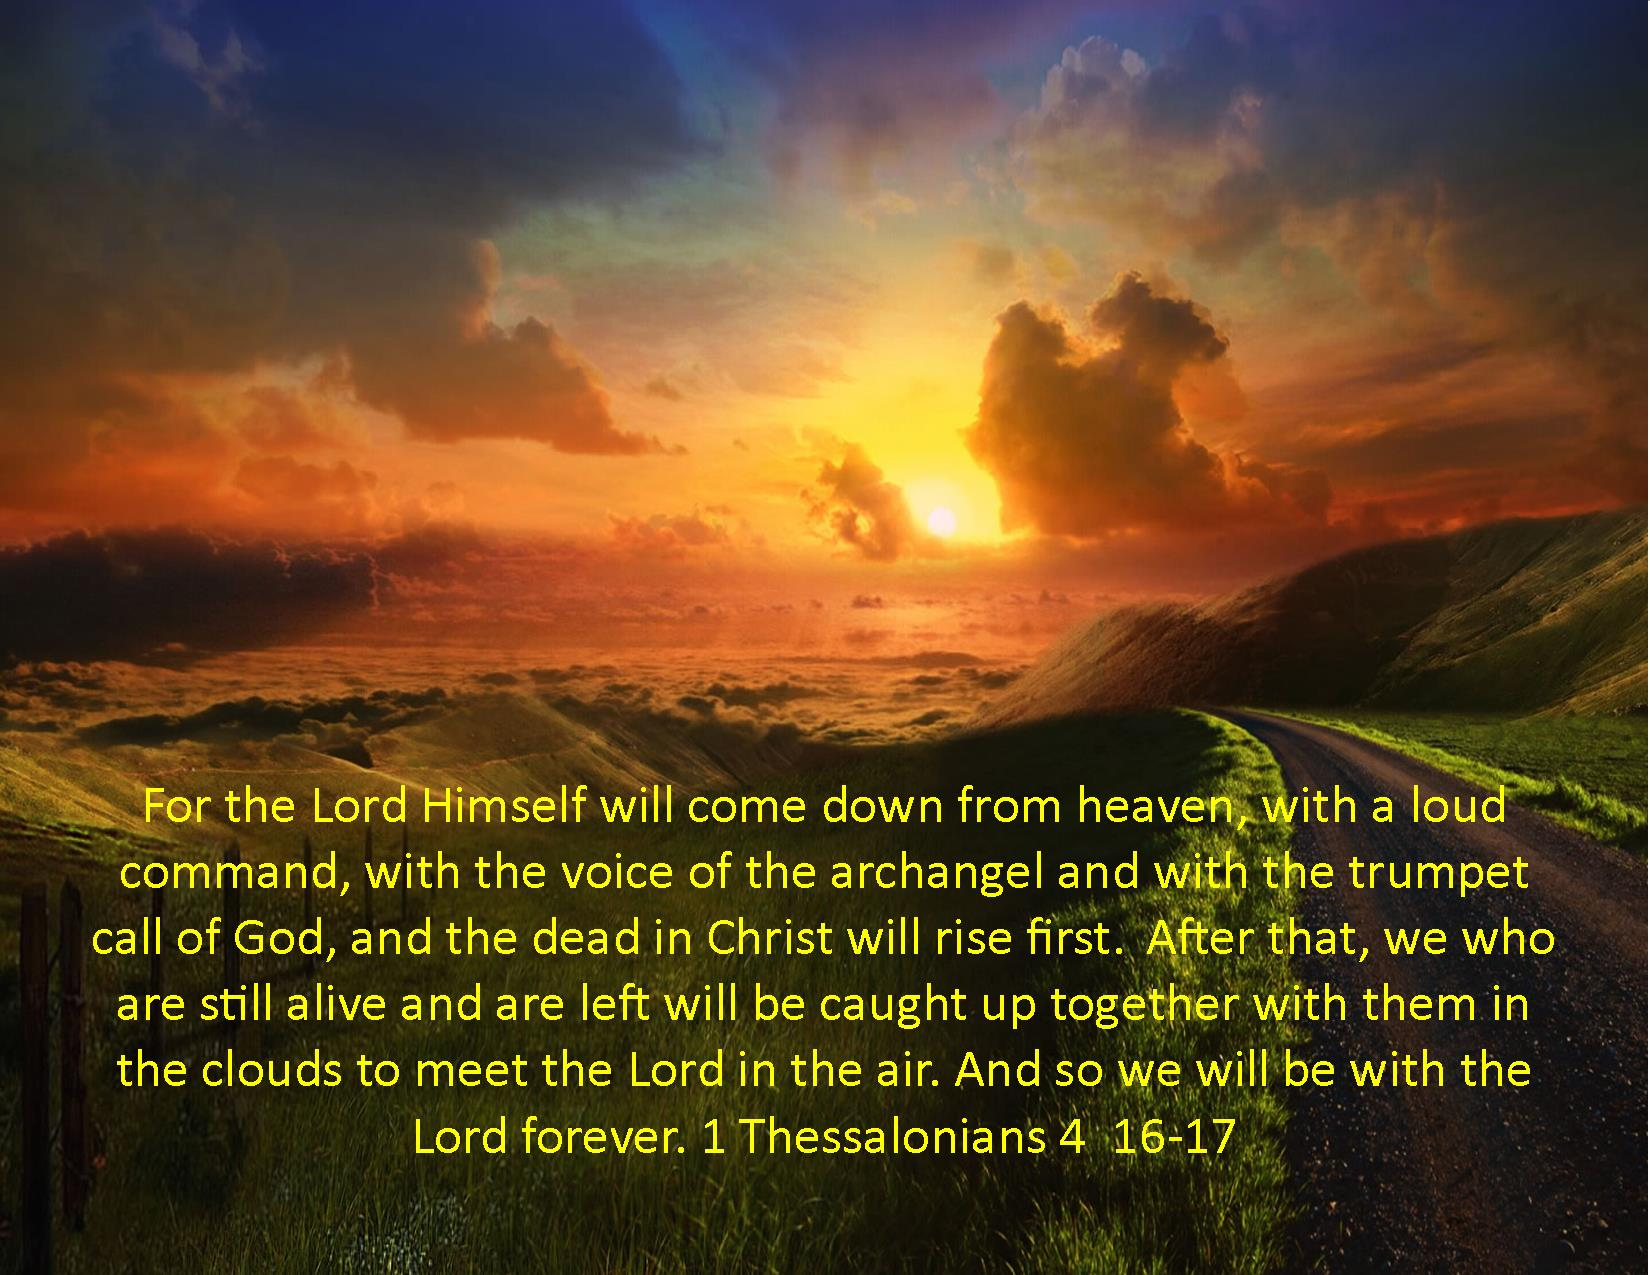 Image result for 1 thessalonians 4:16-17 picture image copyright free